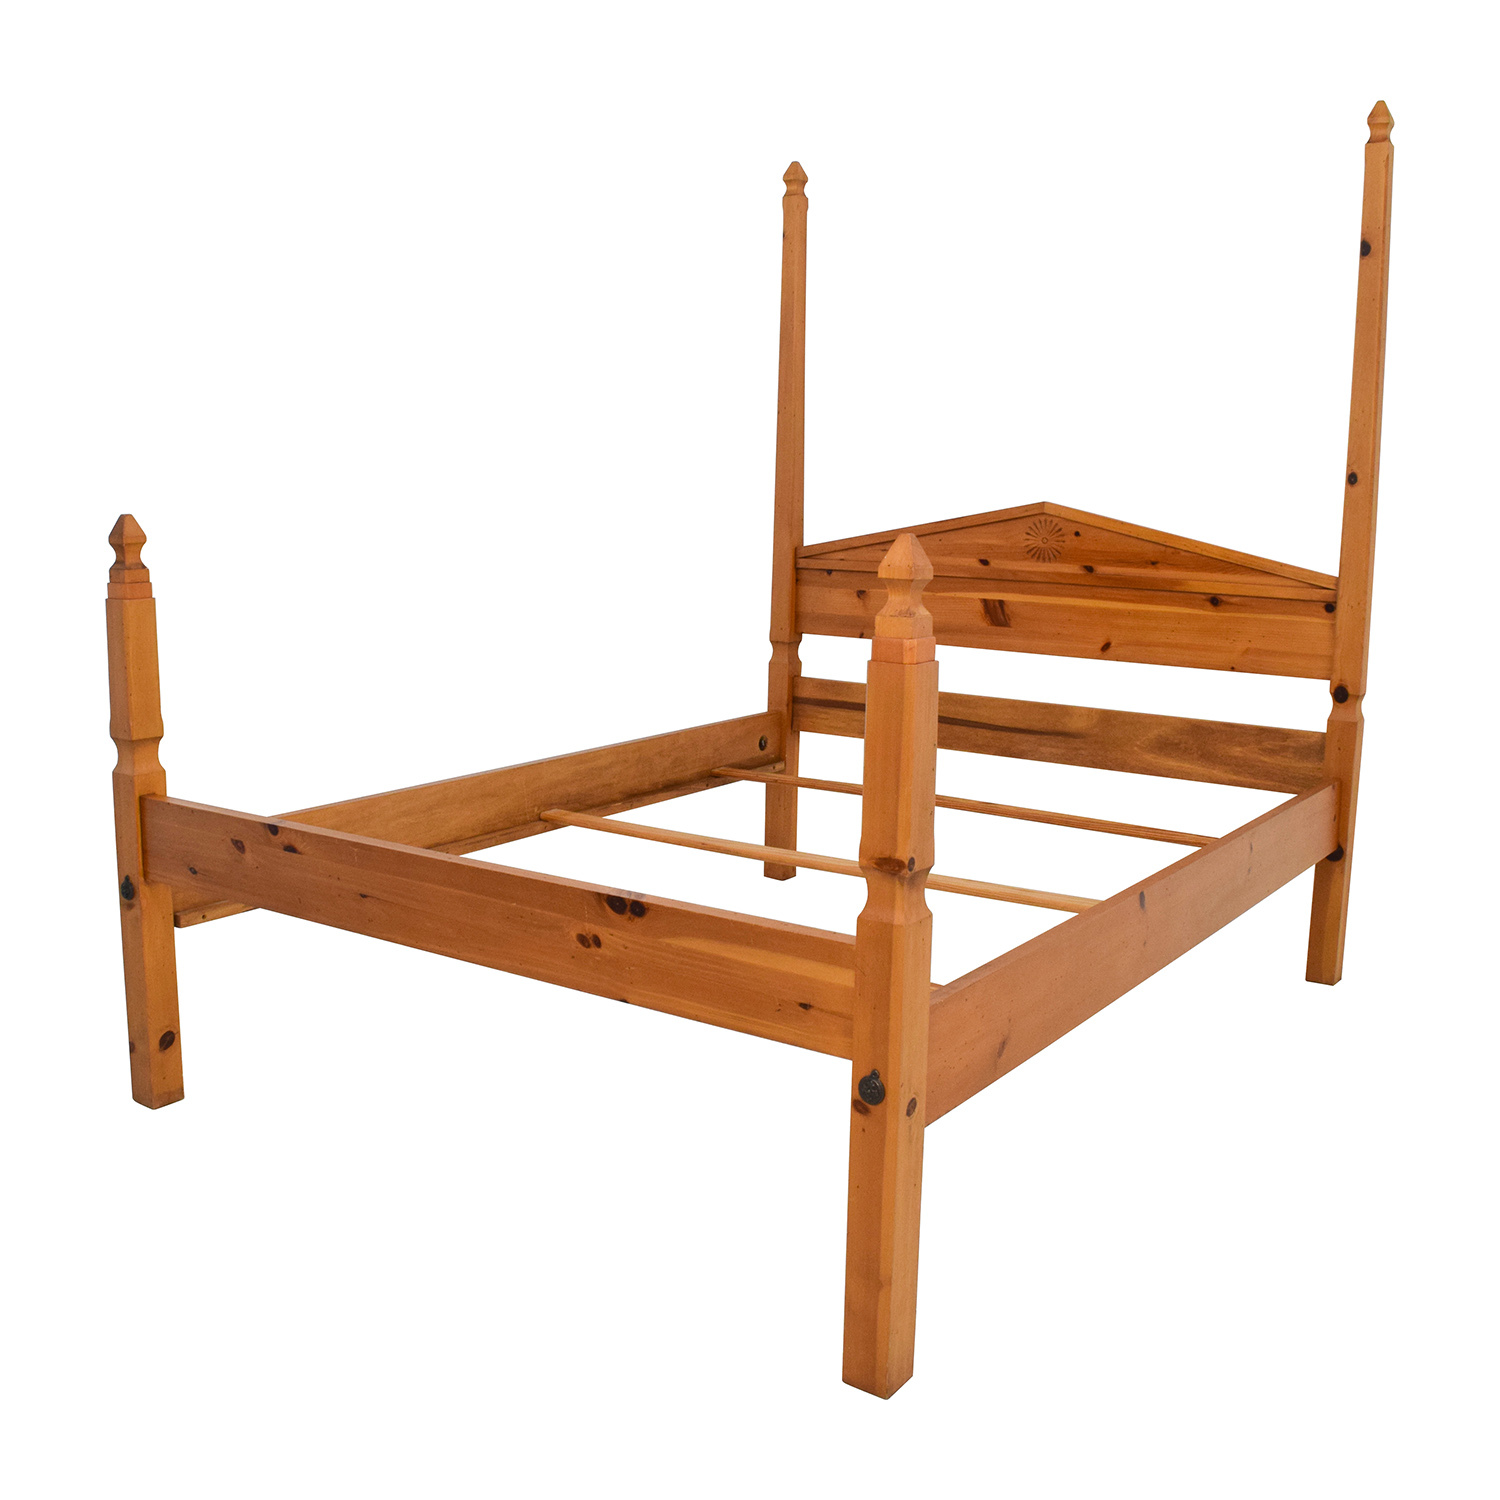 84 off pine four poster queen bed frame beds for Beds for sale